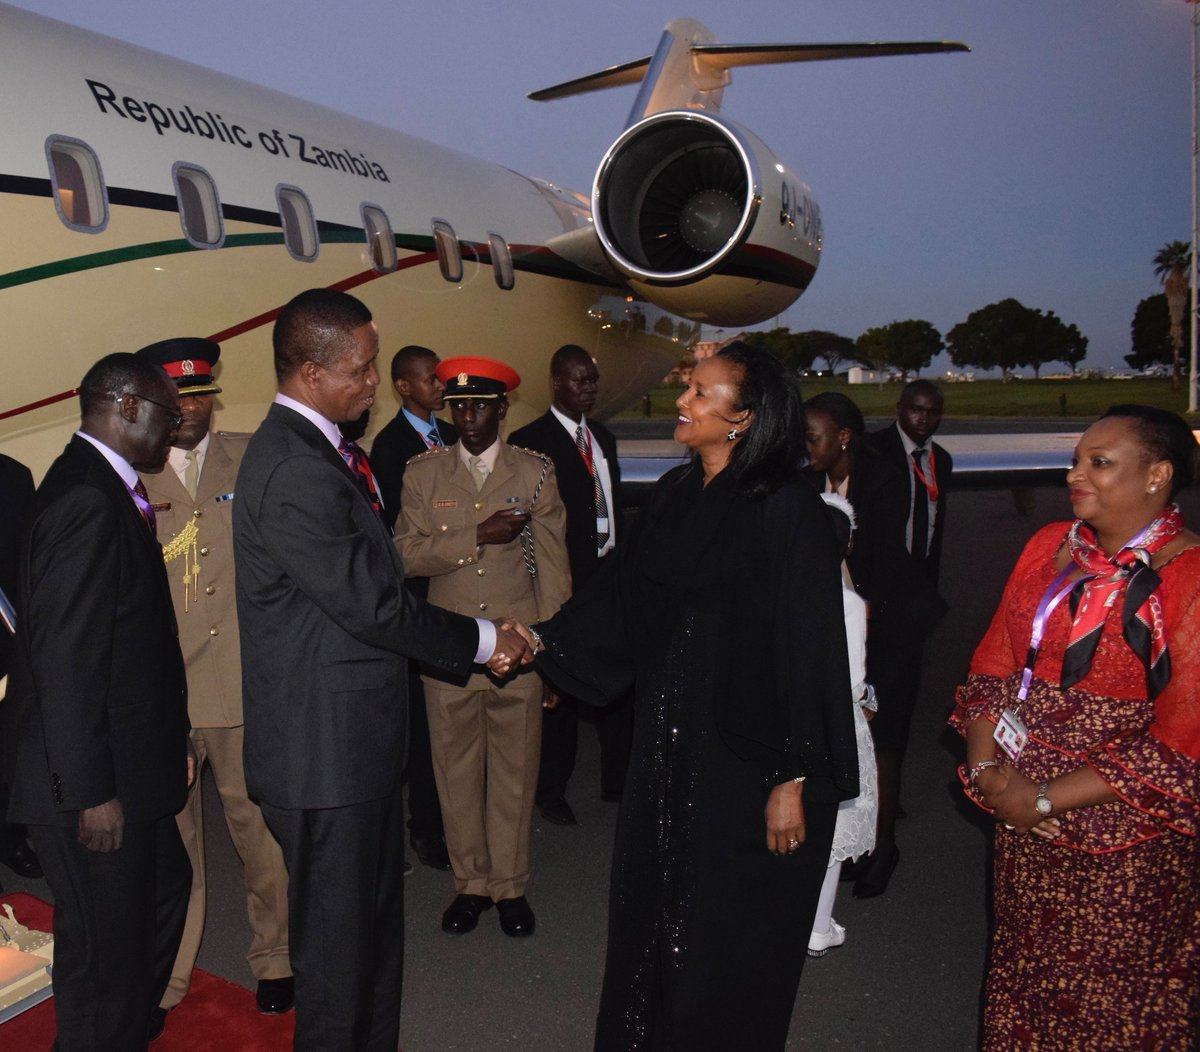 Prominent world leaders jet into Kenya for Uhuru's swearing-in ceremony